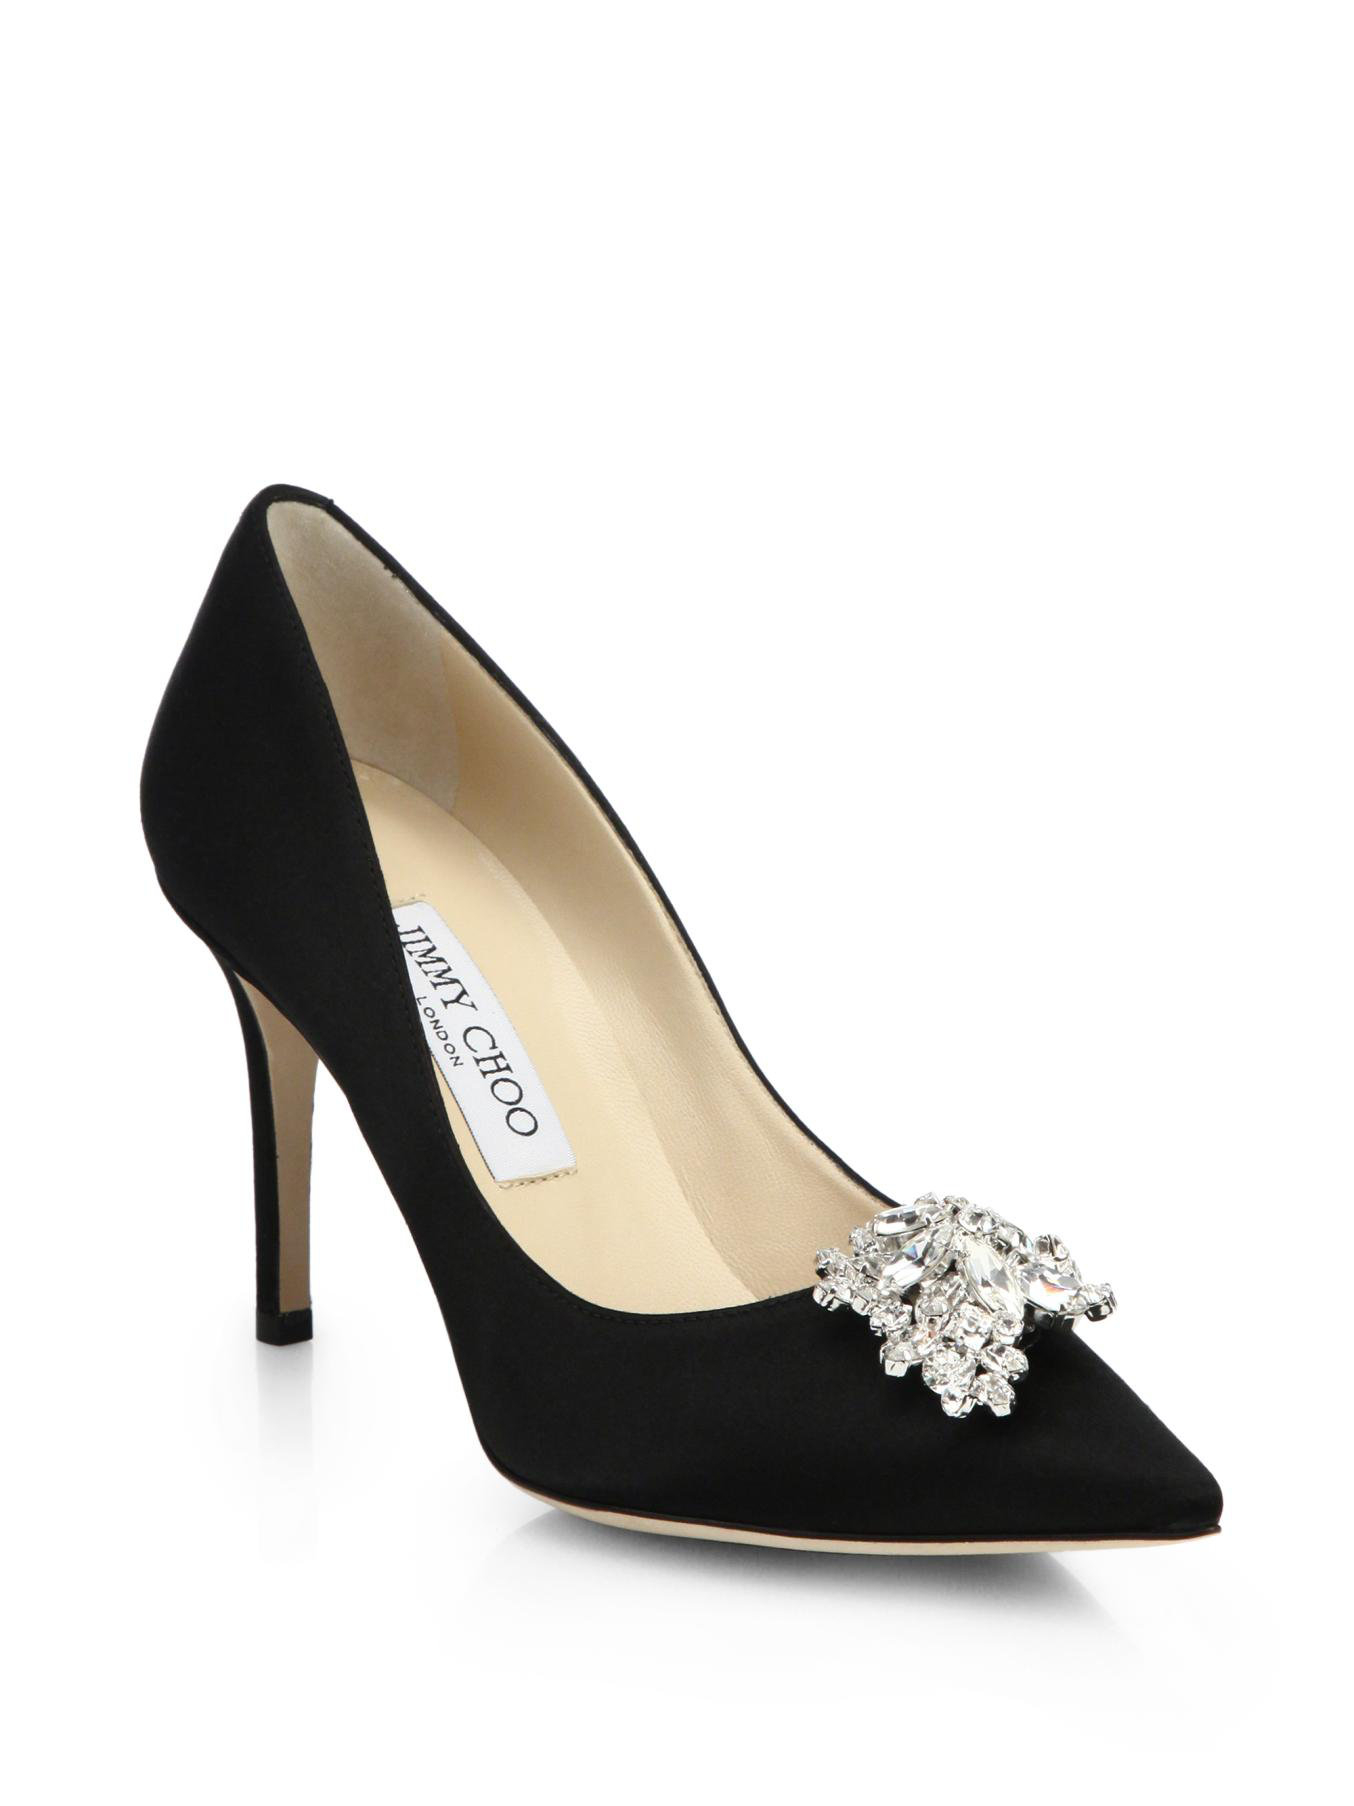 4dc292d639 Gallery. Previously sold at: Saks Fifth Avenue · Women's Pointed Toe Pumps